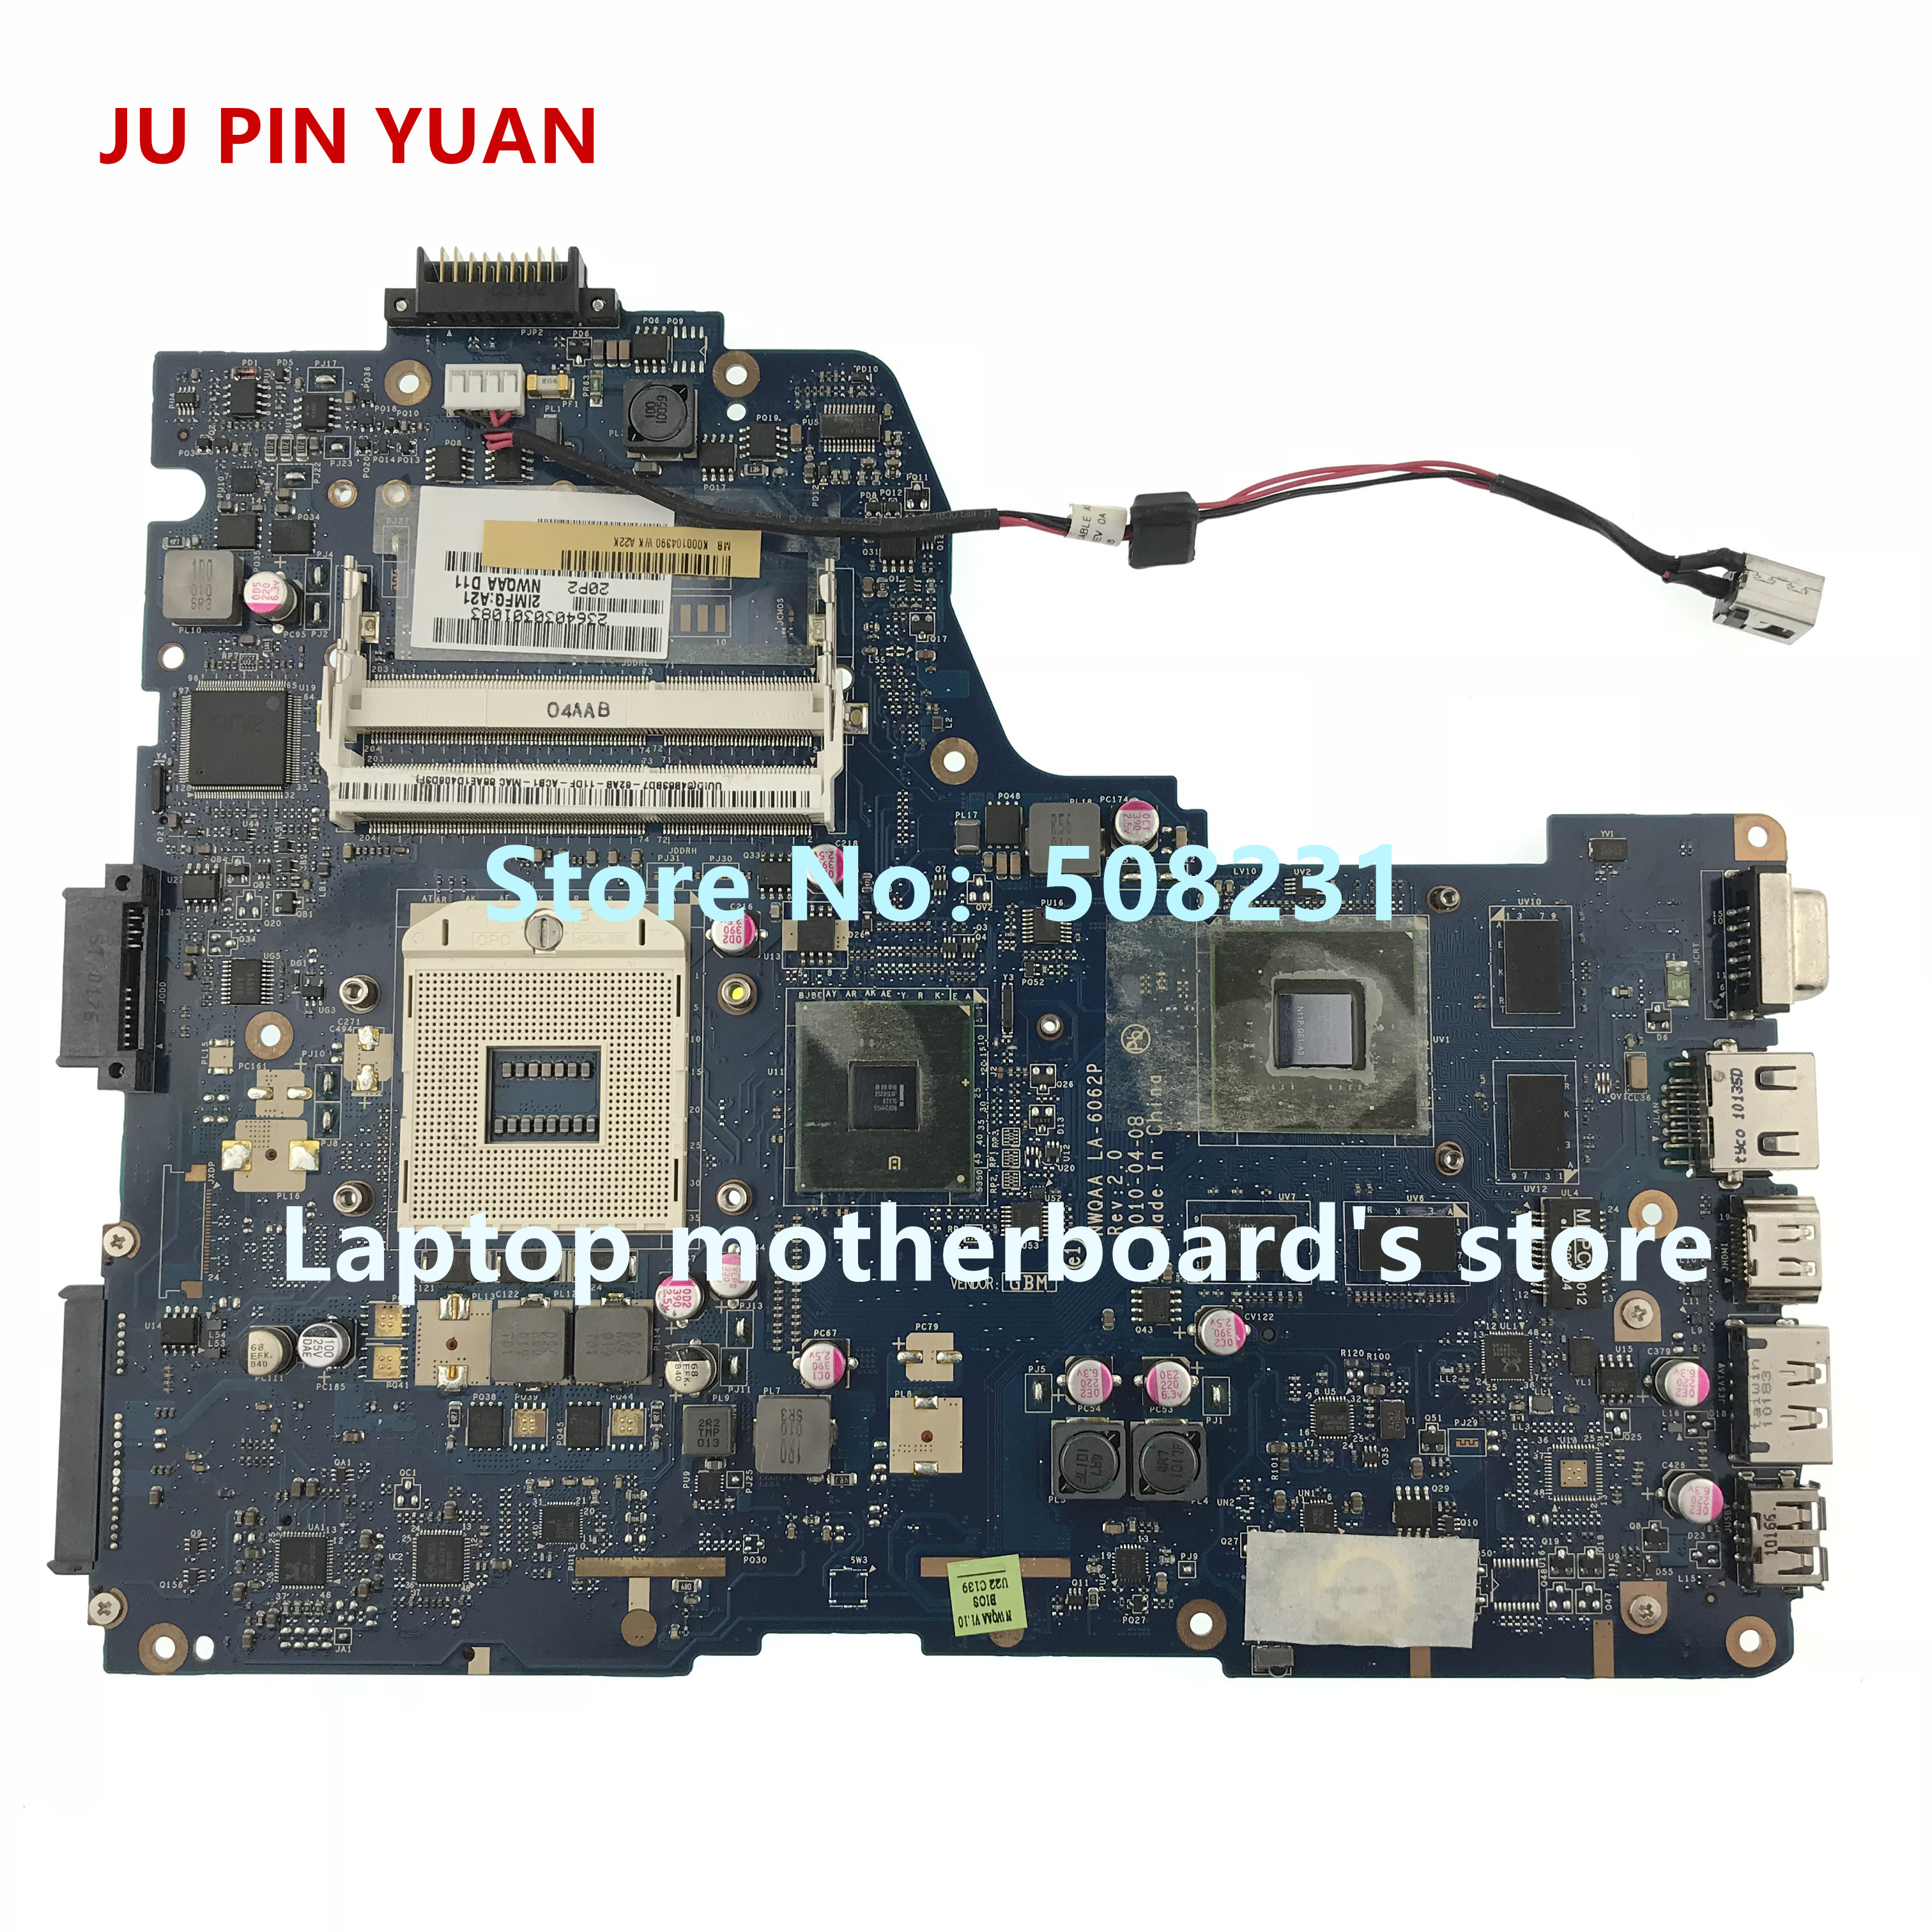 JU PIN YUAN For Toshiba Satellite A660 A665 Notebook Series Laptop Motherboard K000104390 LA-6062P Fully Tested